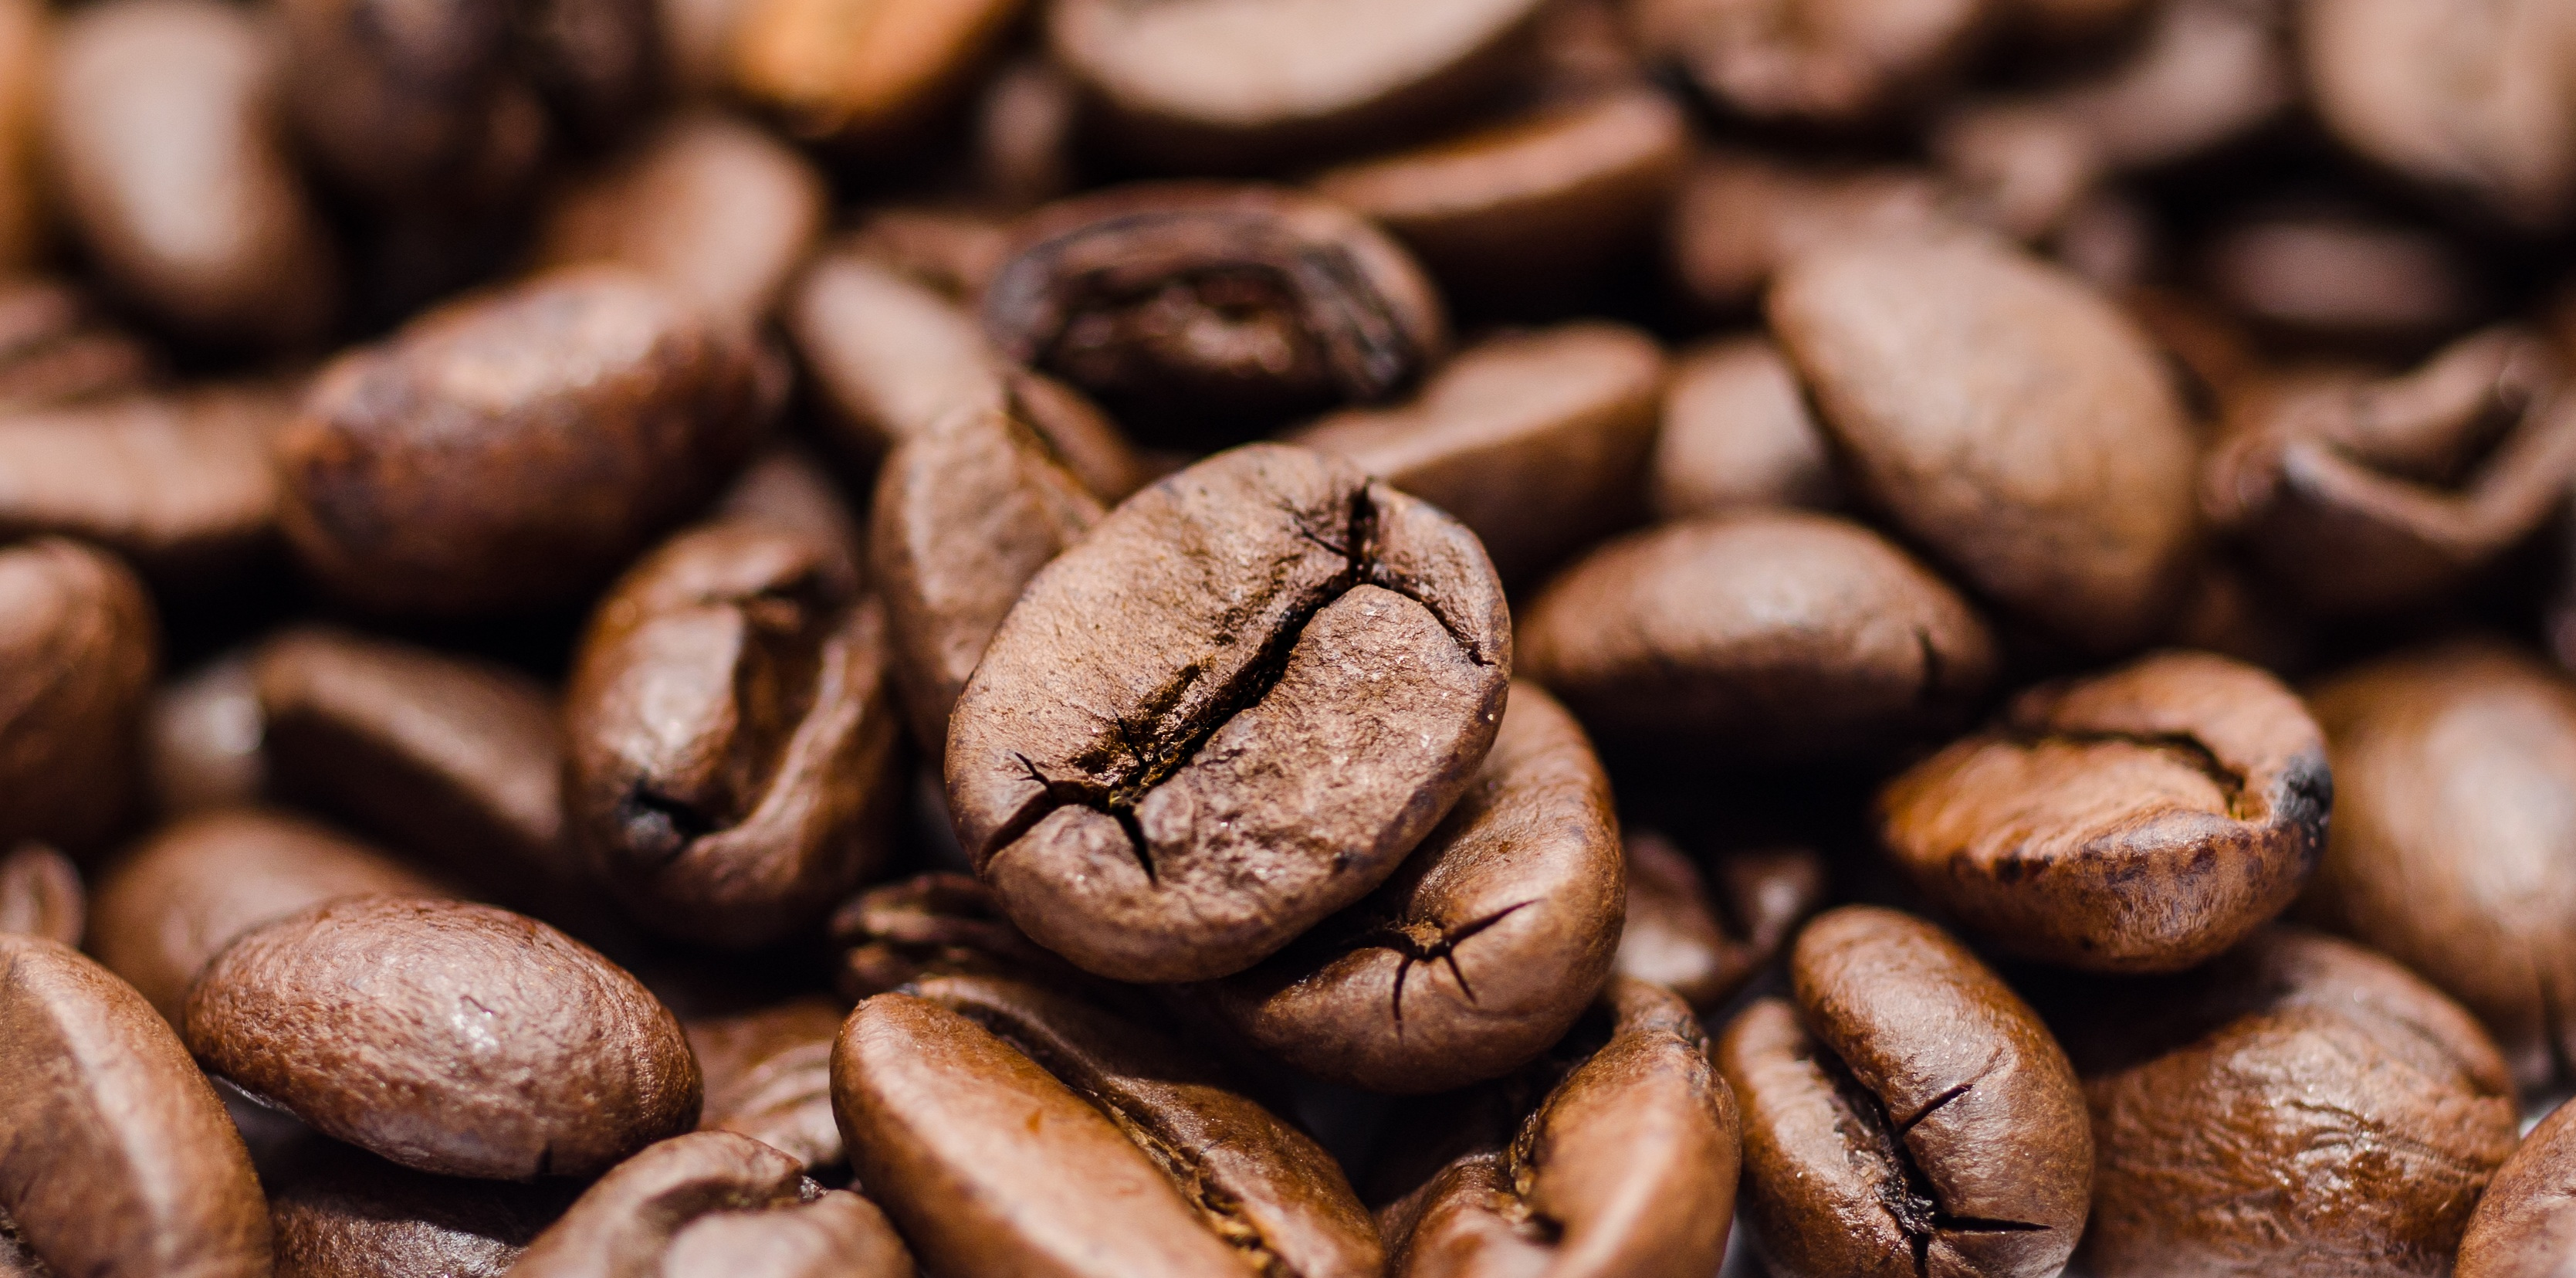 coffee-bean-drink-grind-591651